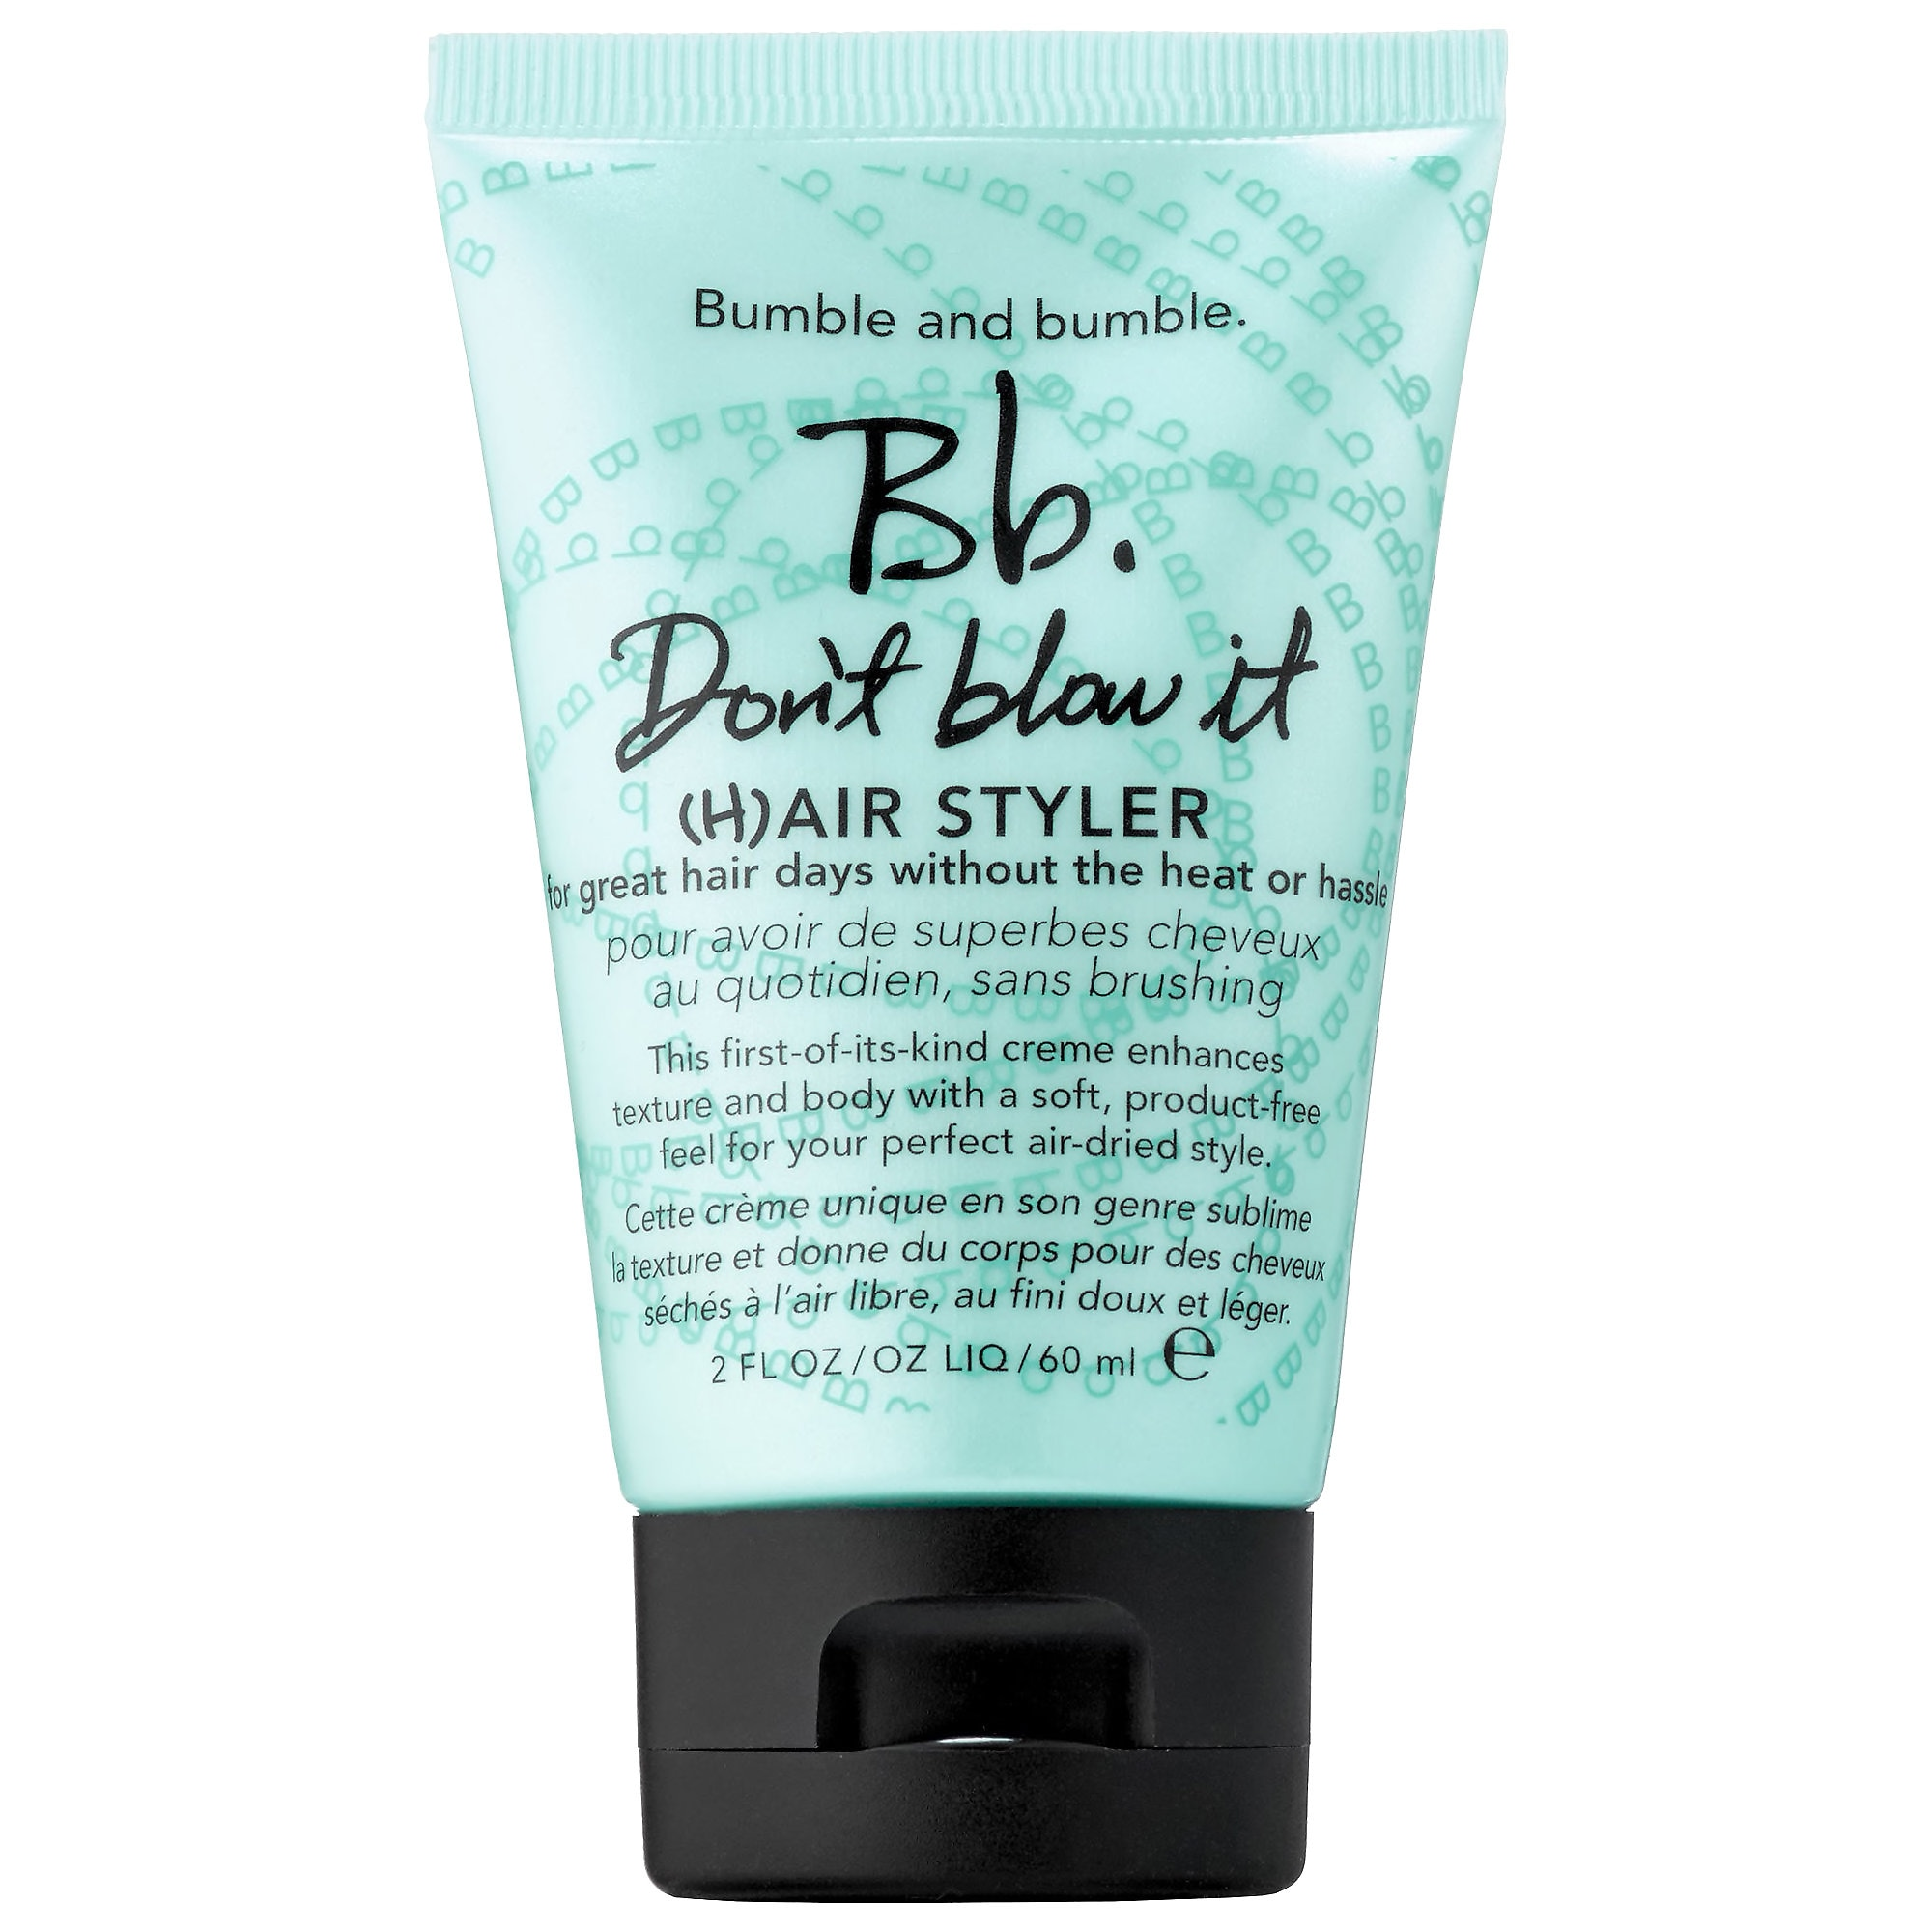 Bumble and bumble - Don't Blow It Fine (H)air Styler